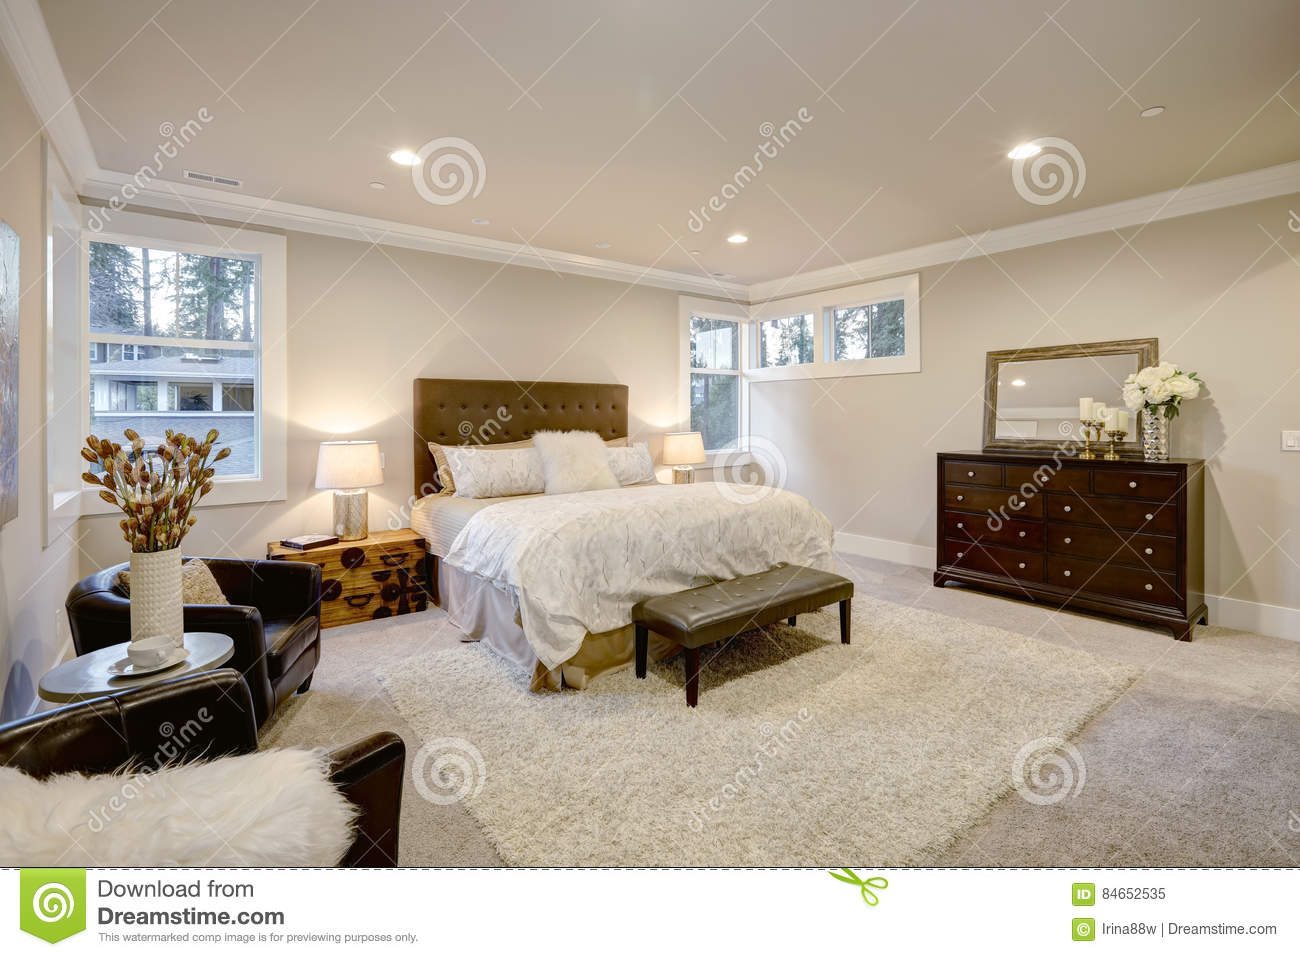 Beige And Brown Master Bedroom Boasts Tufted Queen Bed Stock Image Image Of Open Bright 84652535